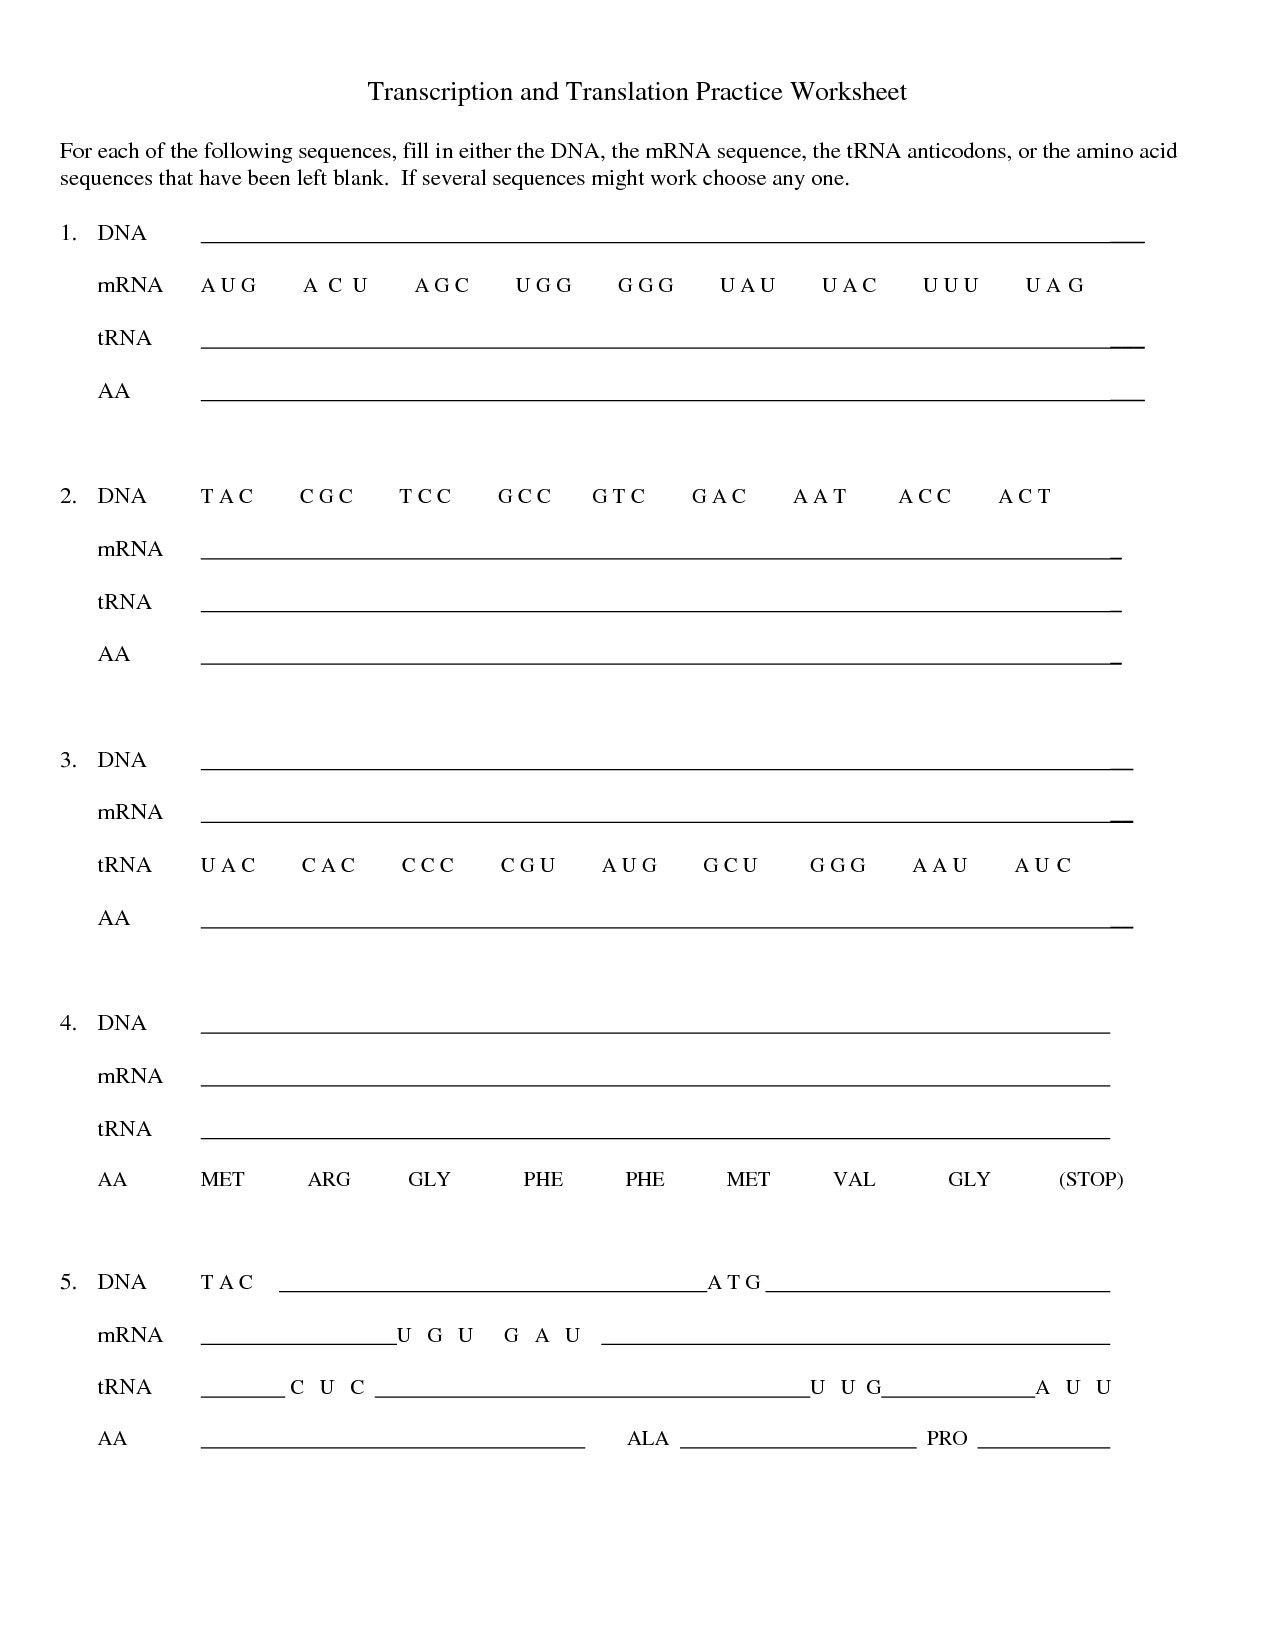 Dna Replication Practice Worksheet Answers